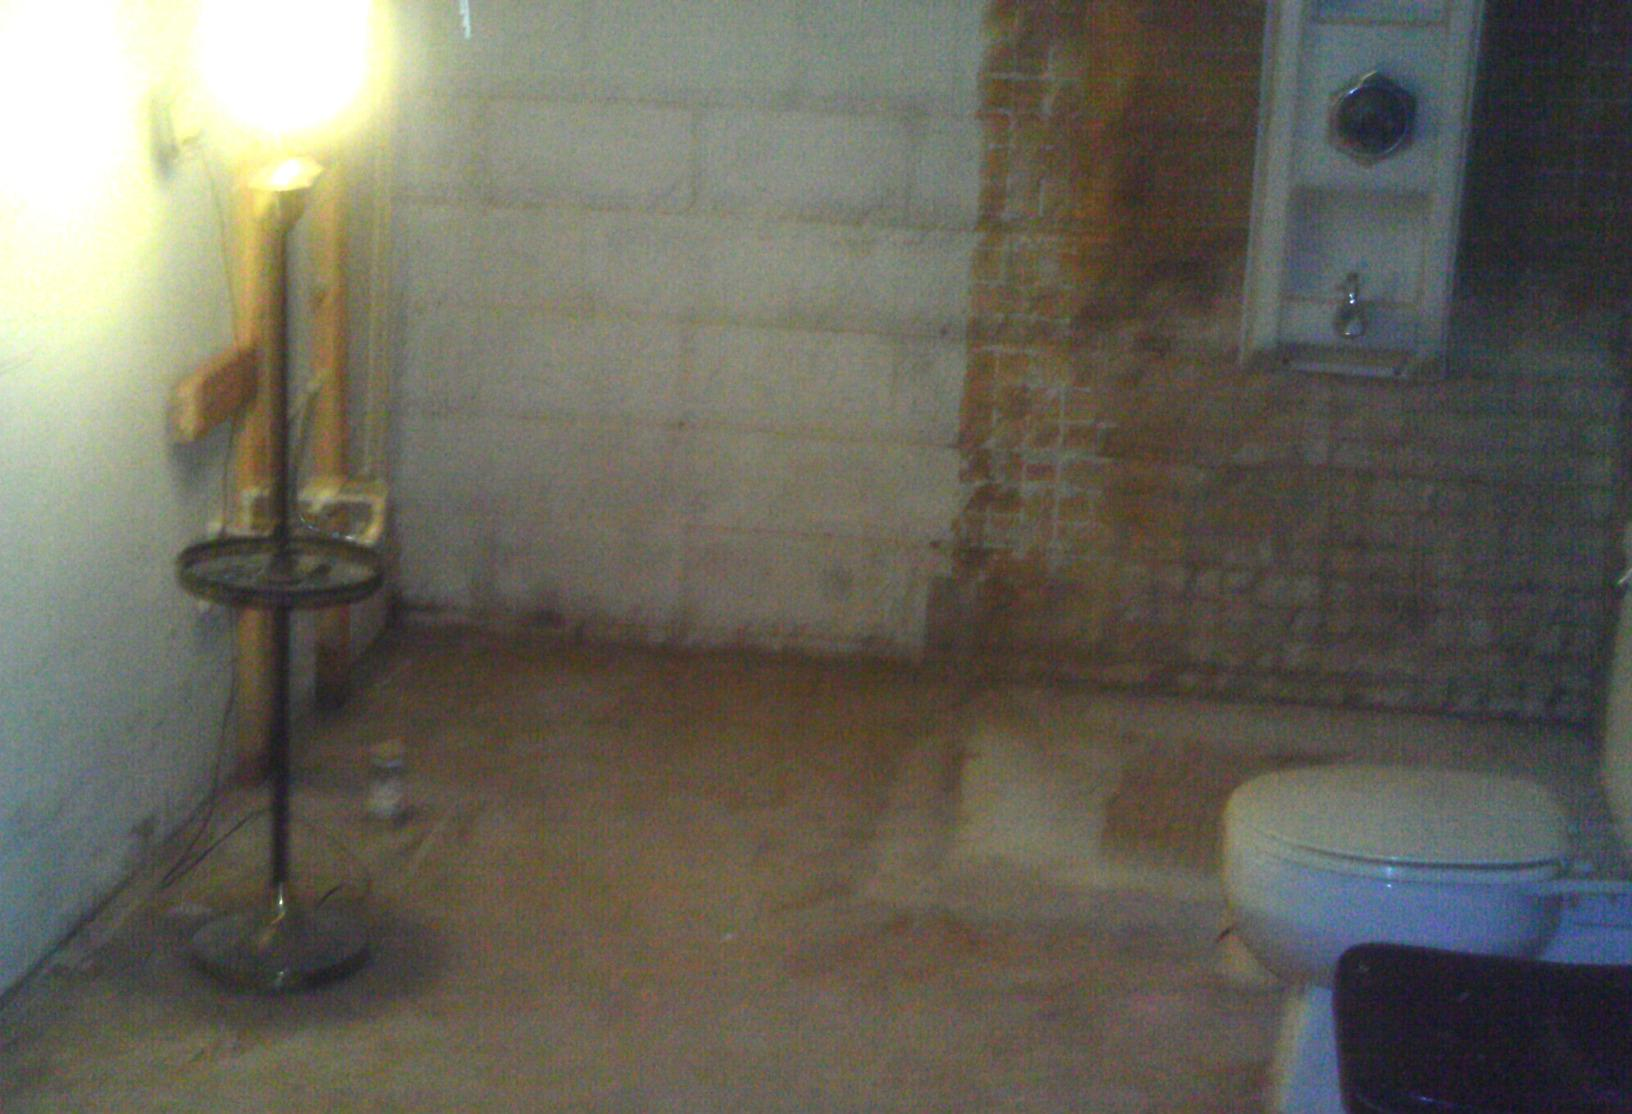 Mold thrives in damp spaces! Making basements smell foul.